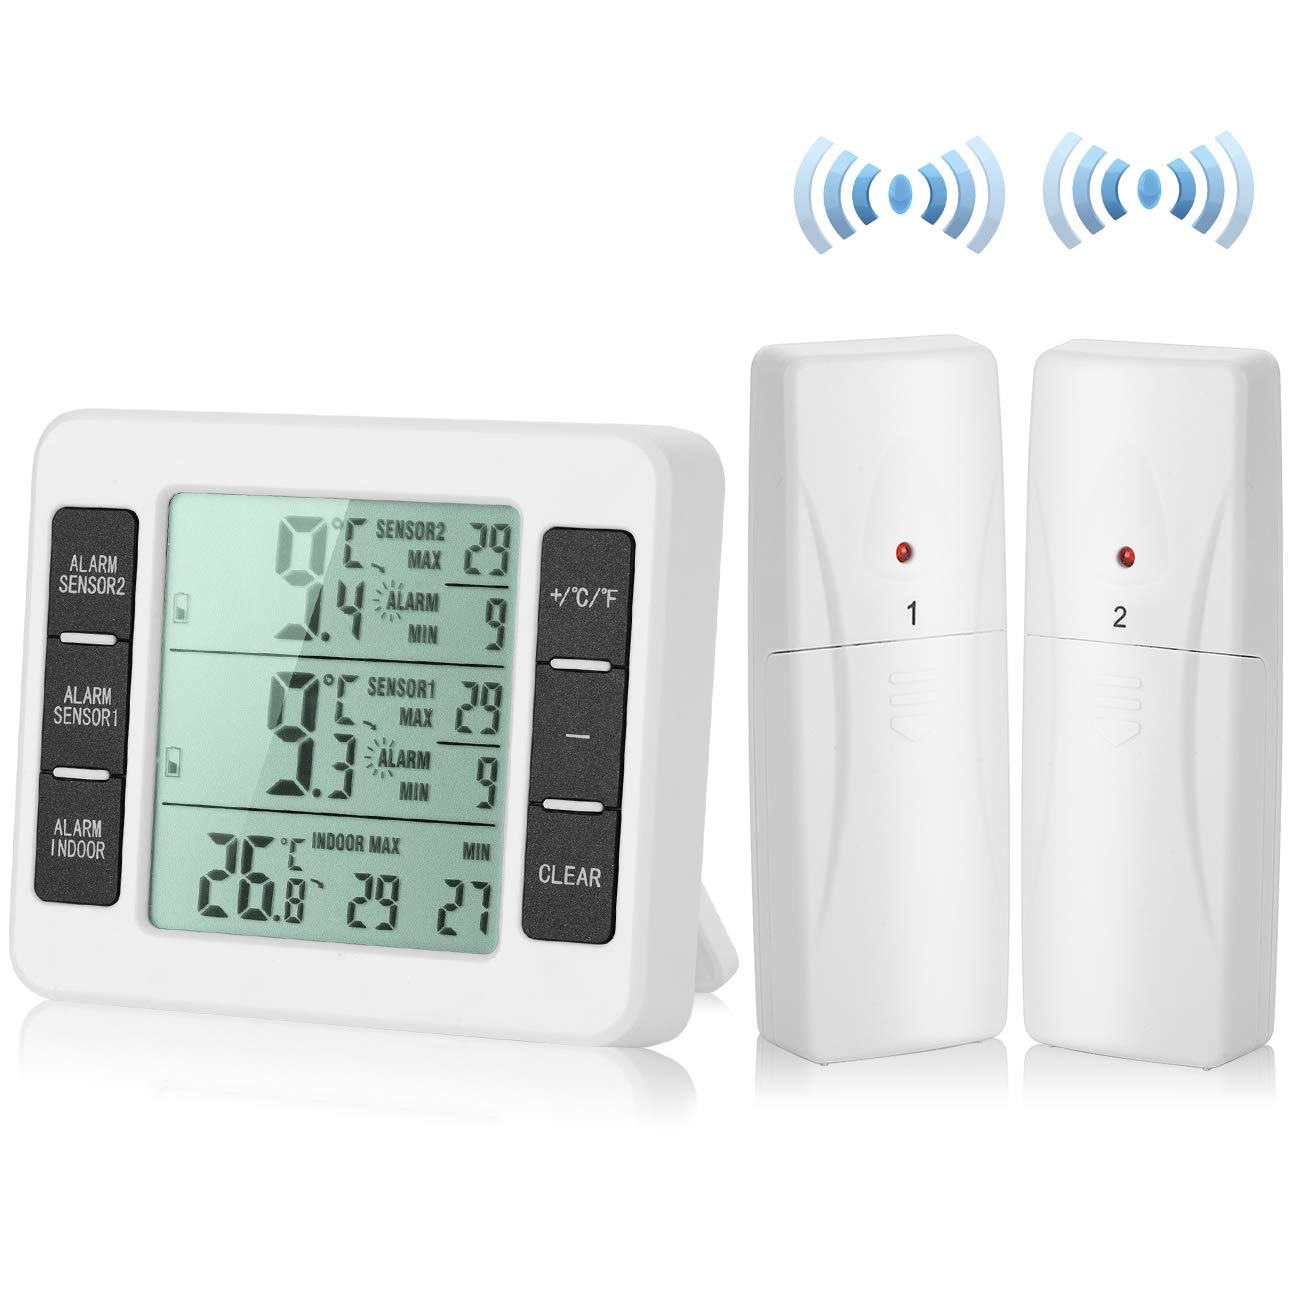 【Upgraded Version】Esnow Refrigerator Thermometer Wireless Digital Freezer Thermometer Digital Sensor with 2PCS Sensors Temperature Monitor and Audible Alarm for Indoor / Outdoor (Battery not Included) by Esnow